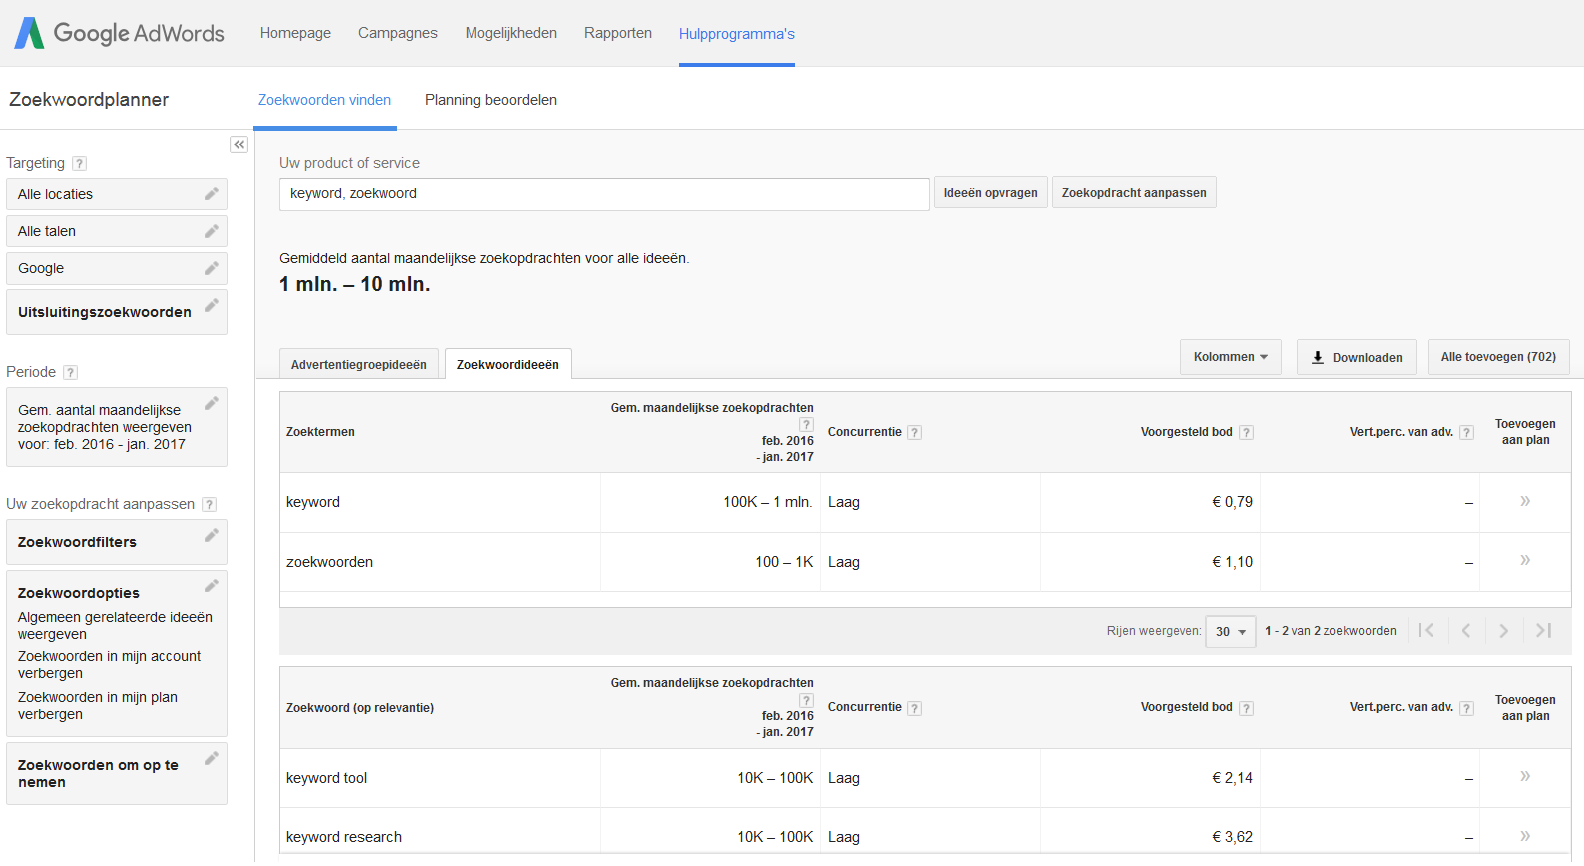 Zoekvolume, concurrentie en CPC per keyword in Google Adwords Zoekwoordplanner keyword planning tool